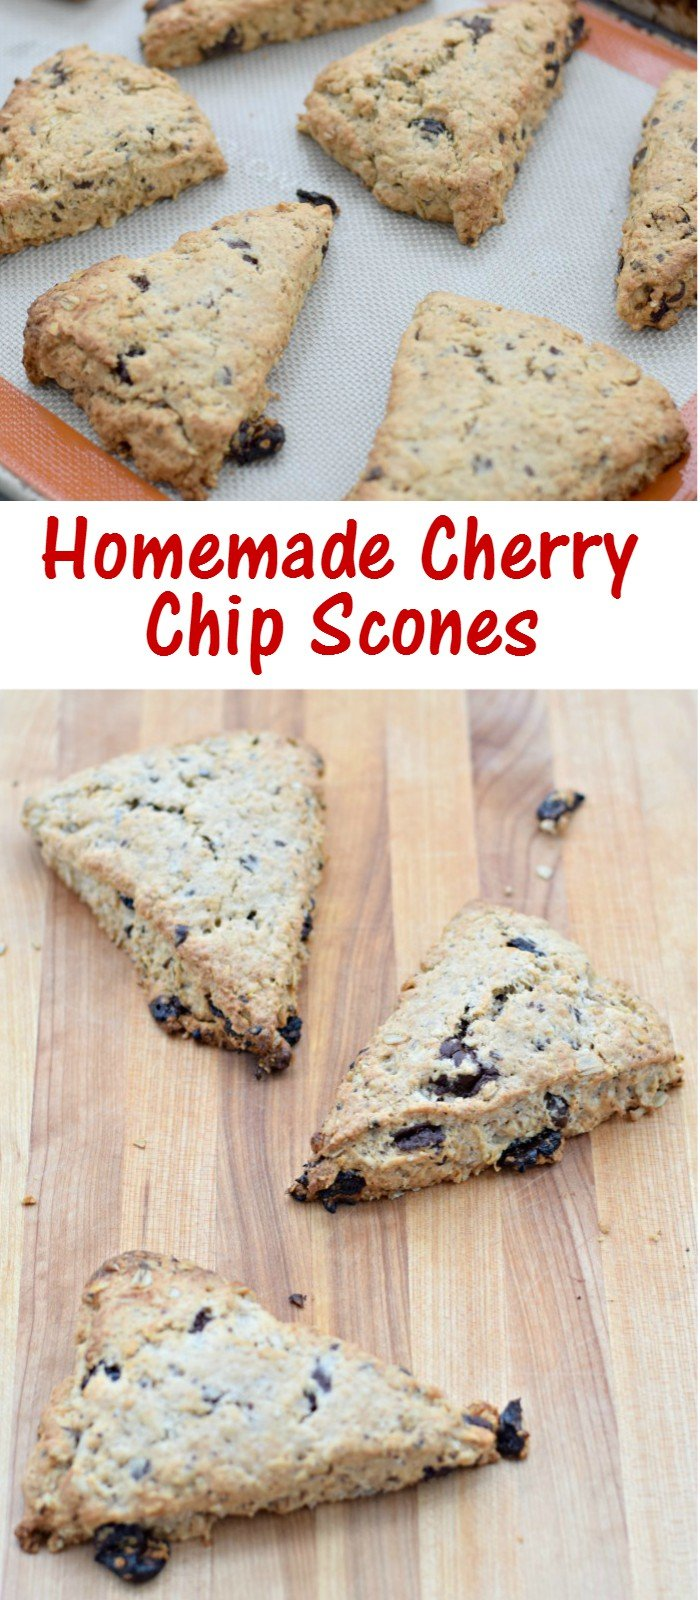 Delicious and easy cherry chip scones recipes. Make them in your food processor. This is a perfect recipe and easy to make from scratch